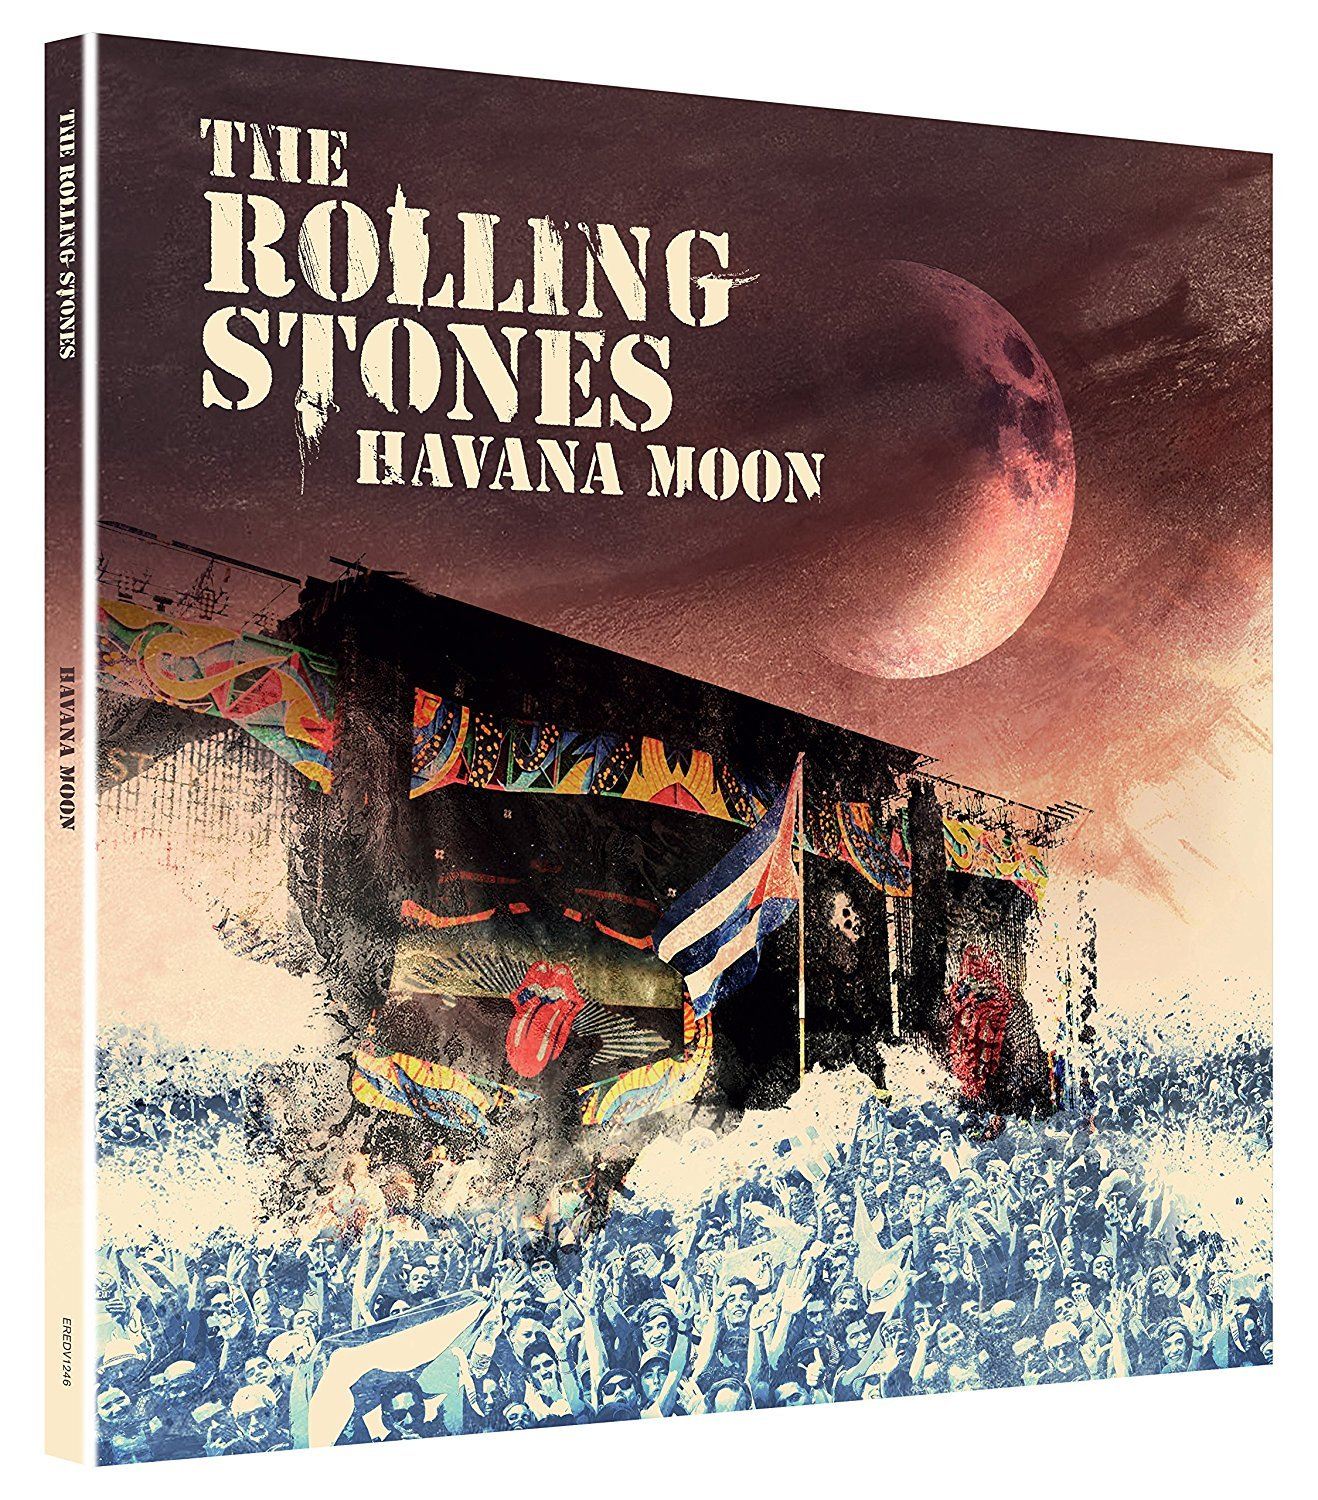 Blu-ray : Rolling Stones - Havana Moon (With DVD, With CD, Deluxe Edition, United Kingdom - Import, 4PC)